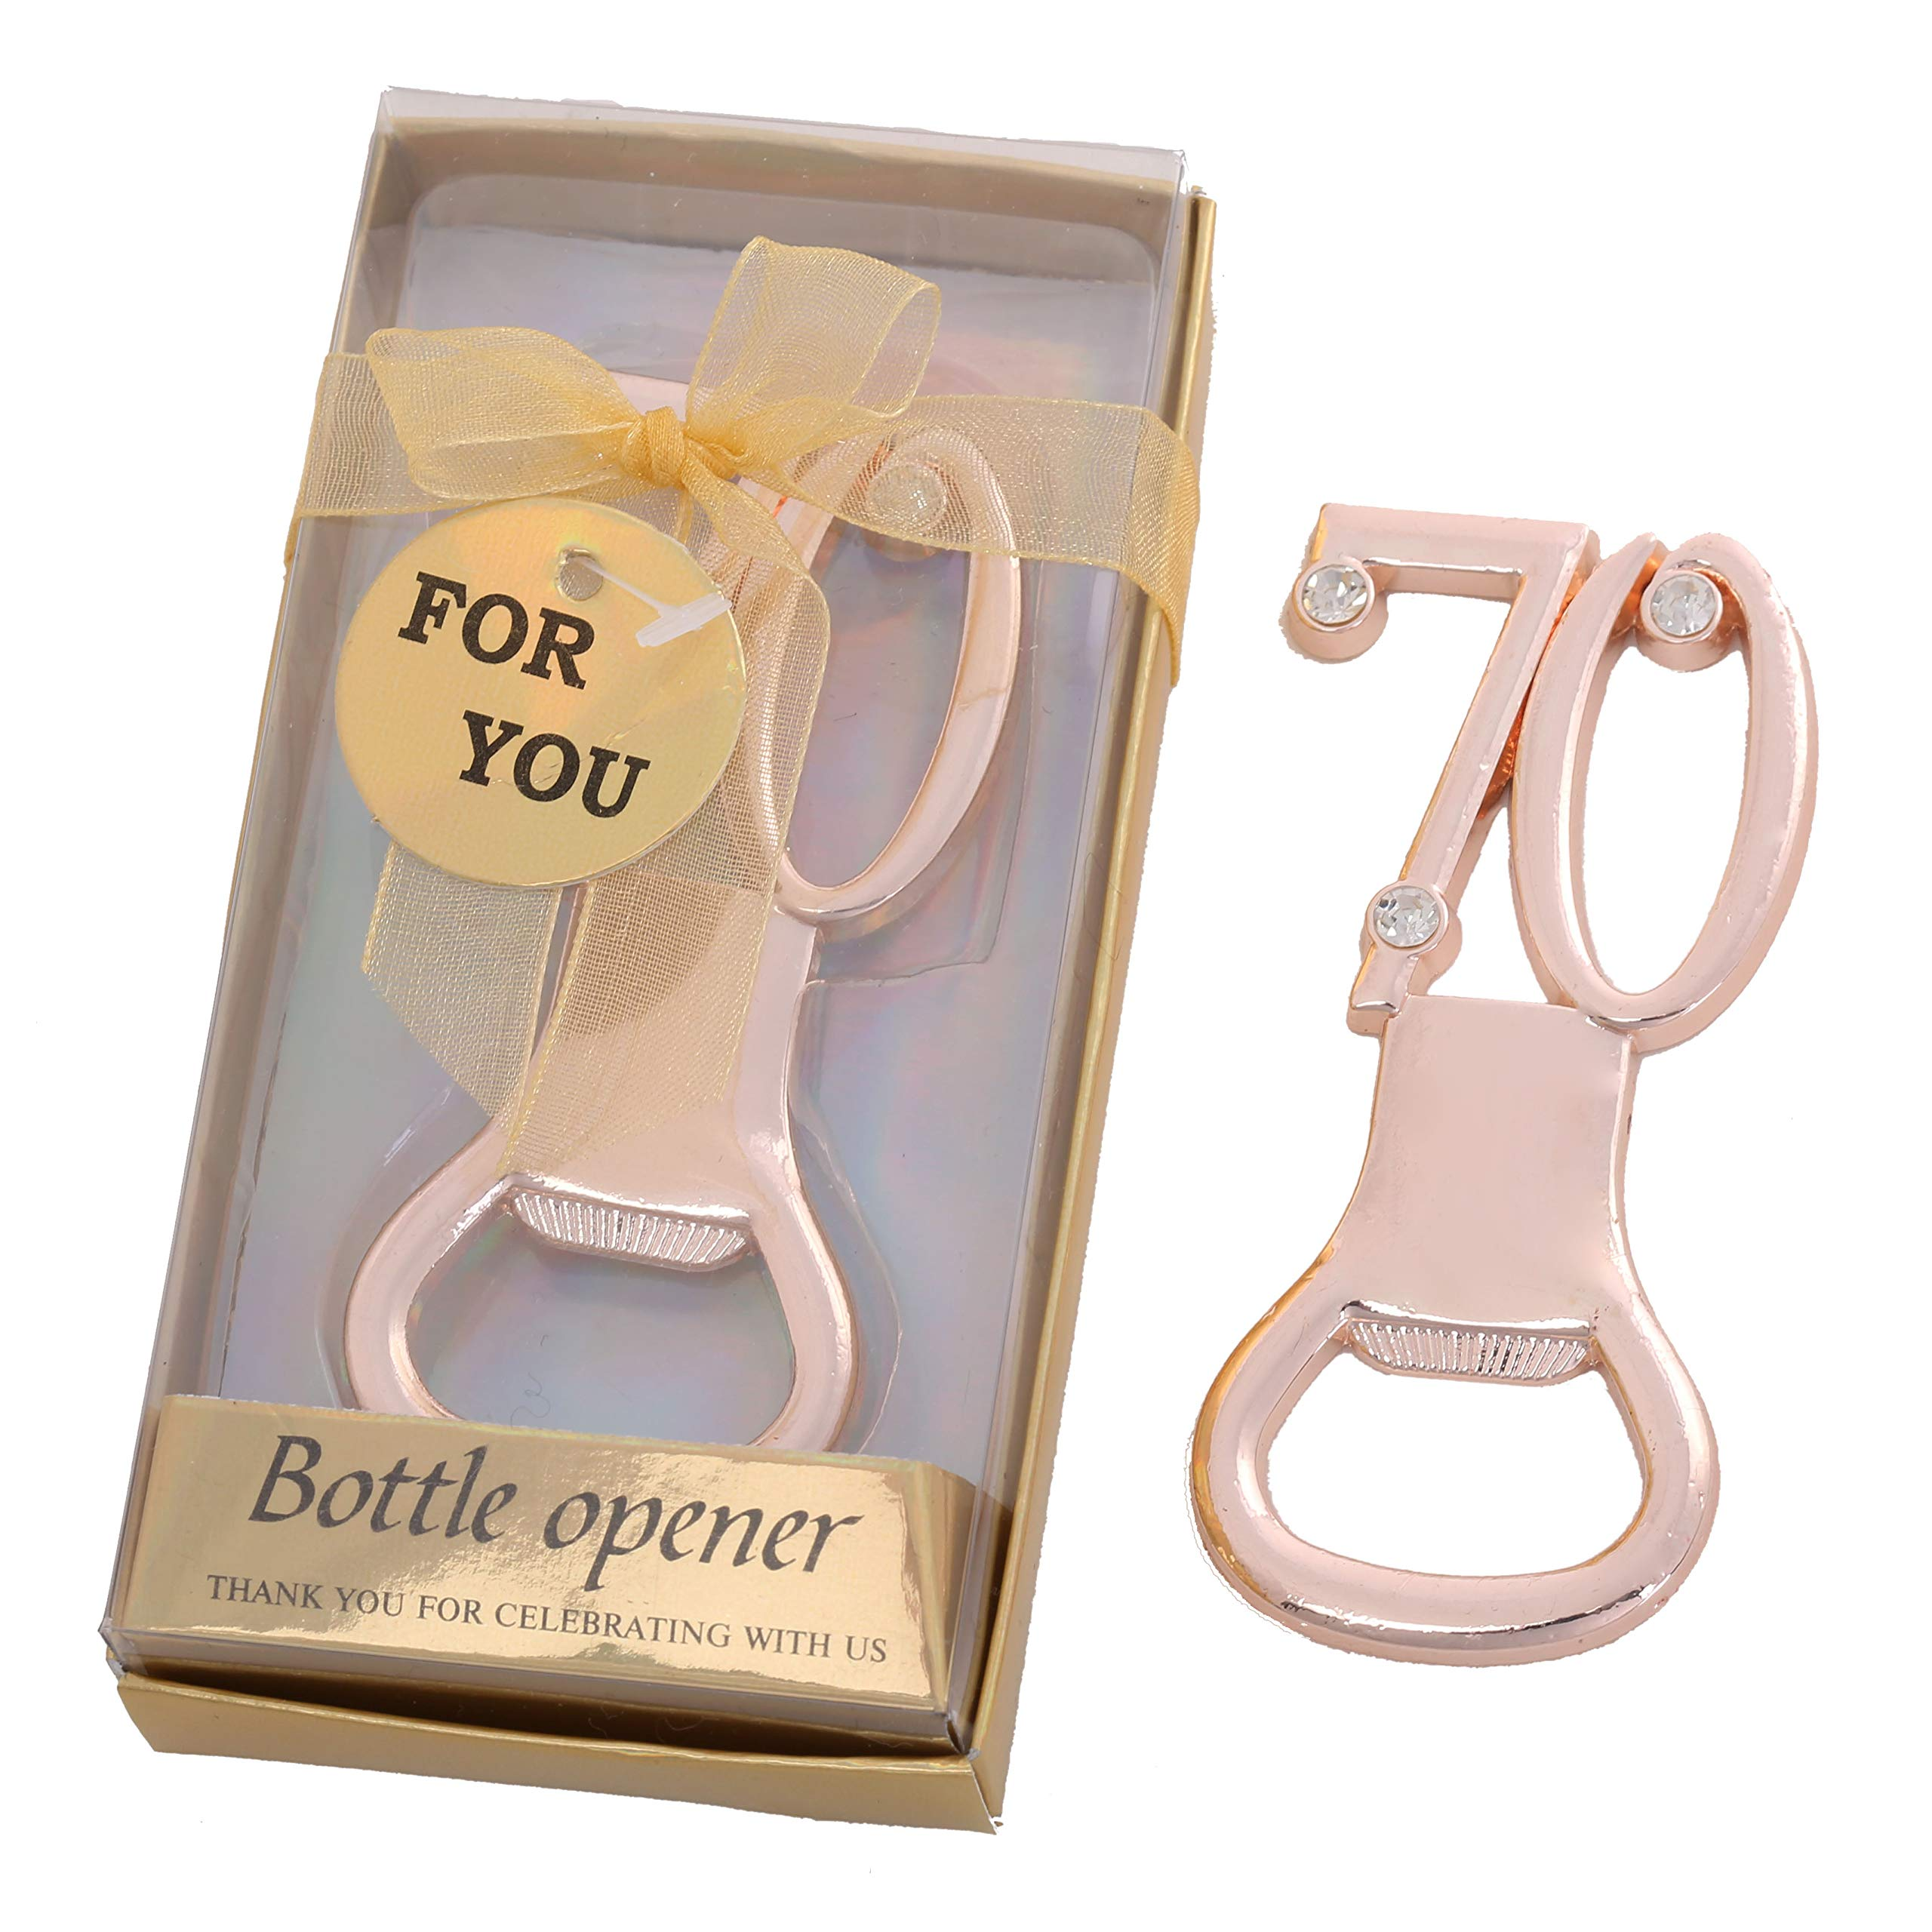 Yuokwer 24 PCS Bottle Openers Gold Birthday Party Favors 70 Anniversary Favors for Guests,Number 70th Birthday Party Decorations Beer Bottle Openers for Party Gift Souvenir Supplies (Gold 70th, 24)